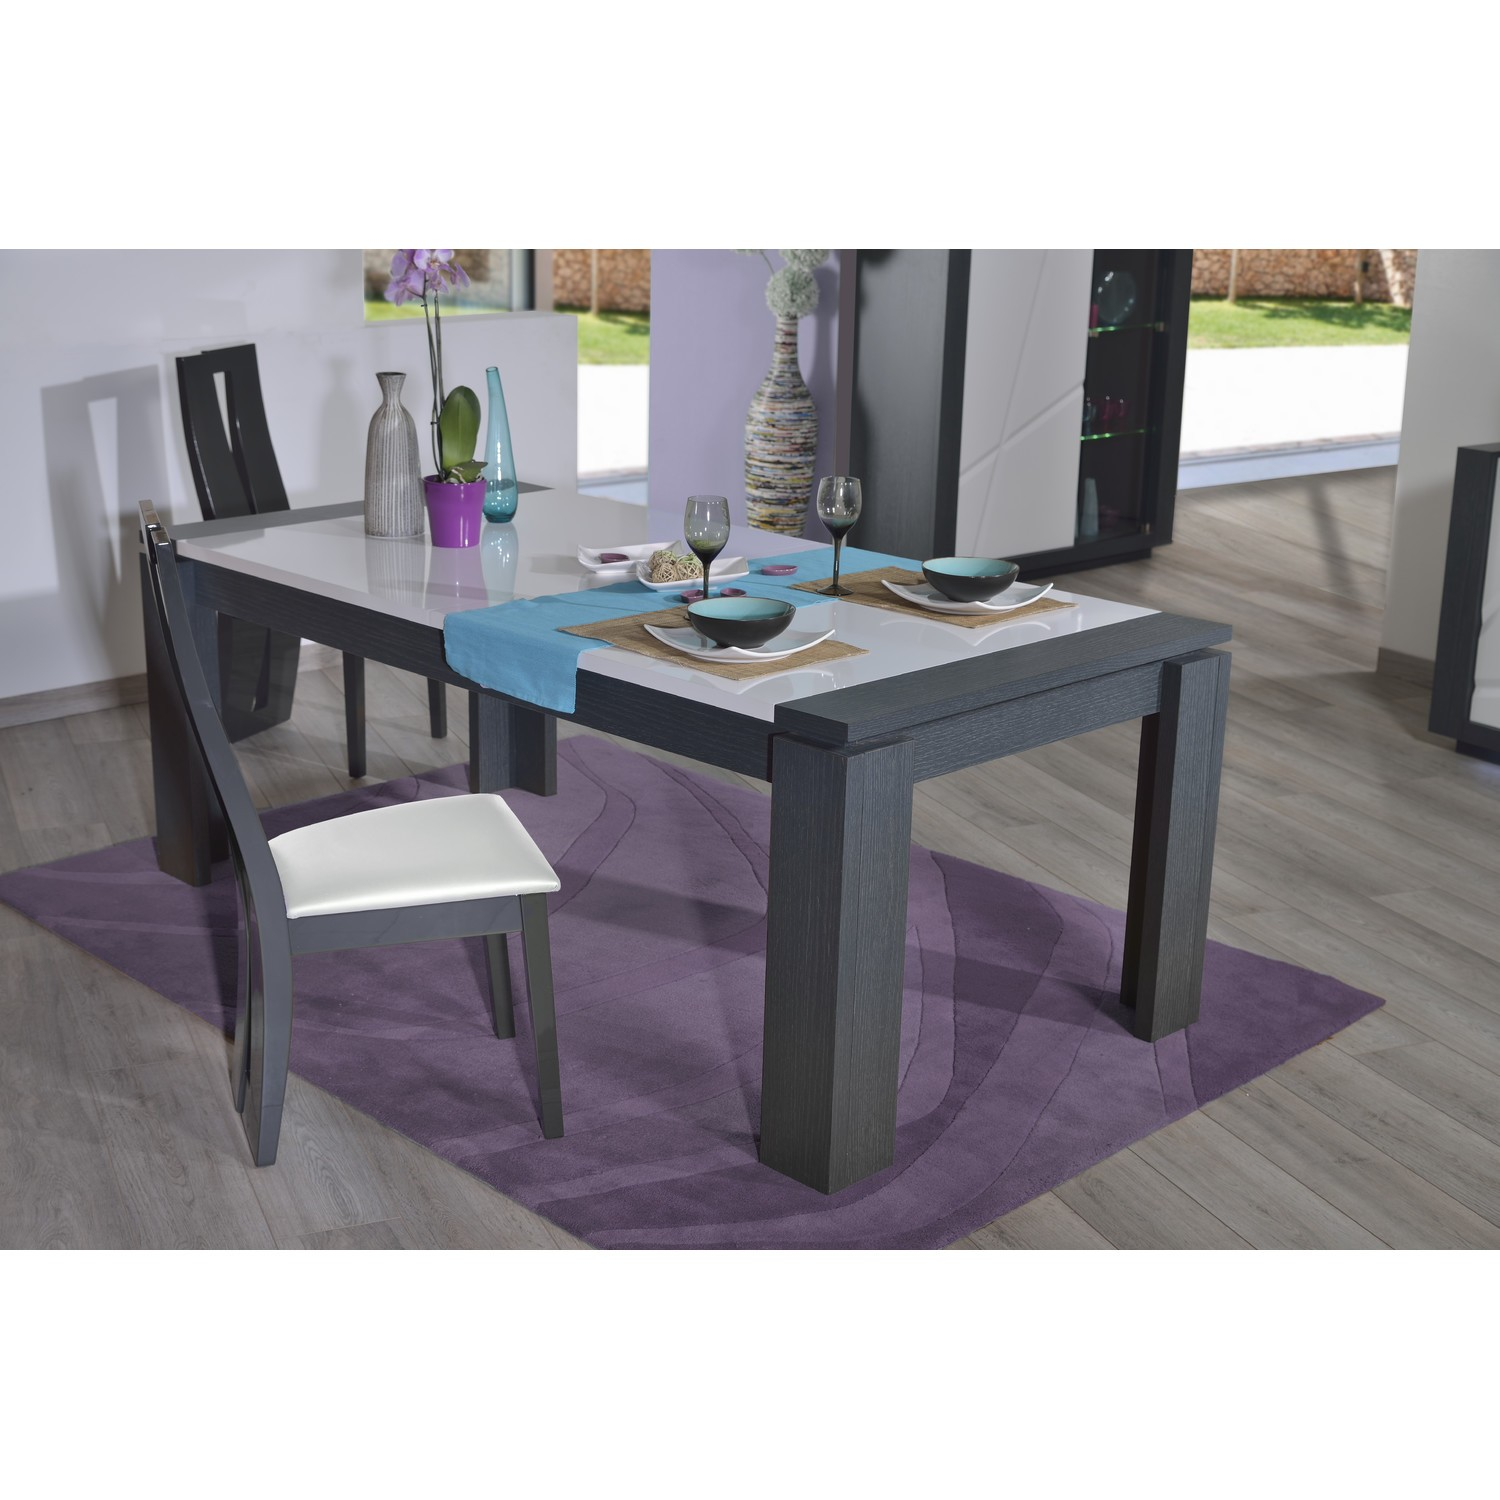 Quartz extendable dining table with dark wood body Dining